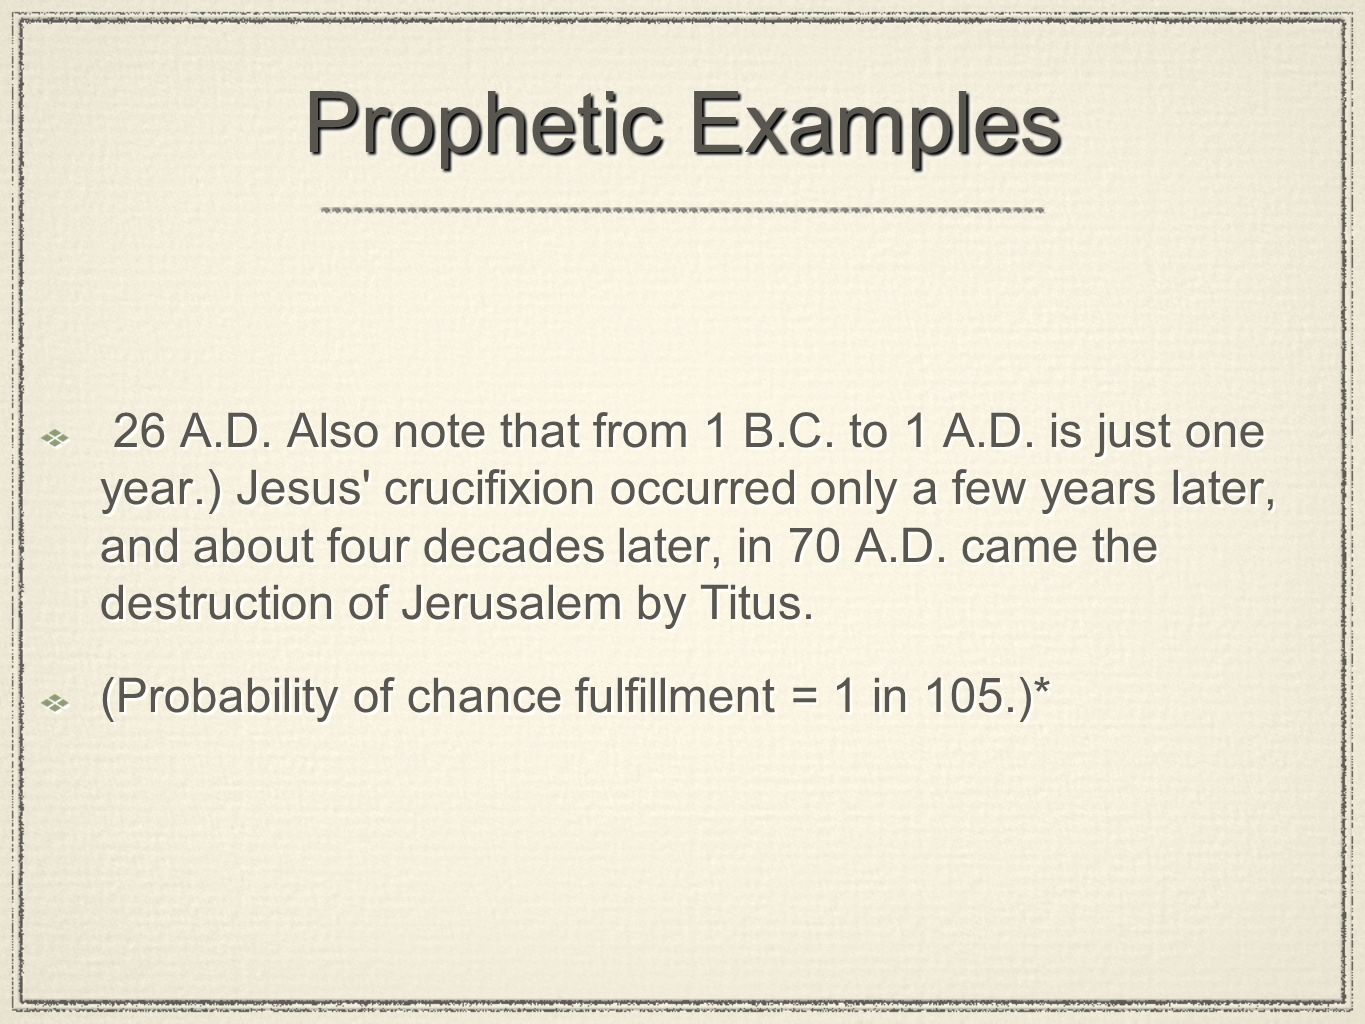 Prophetic Examples 26 A.D. Also note that from 1 B.C. to 1 A.D. is just one year.) Jesus' crucifixion occurred only a few years later, and about four